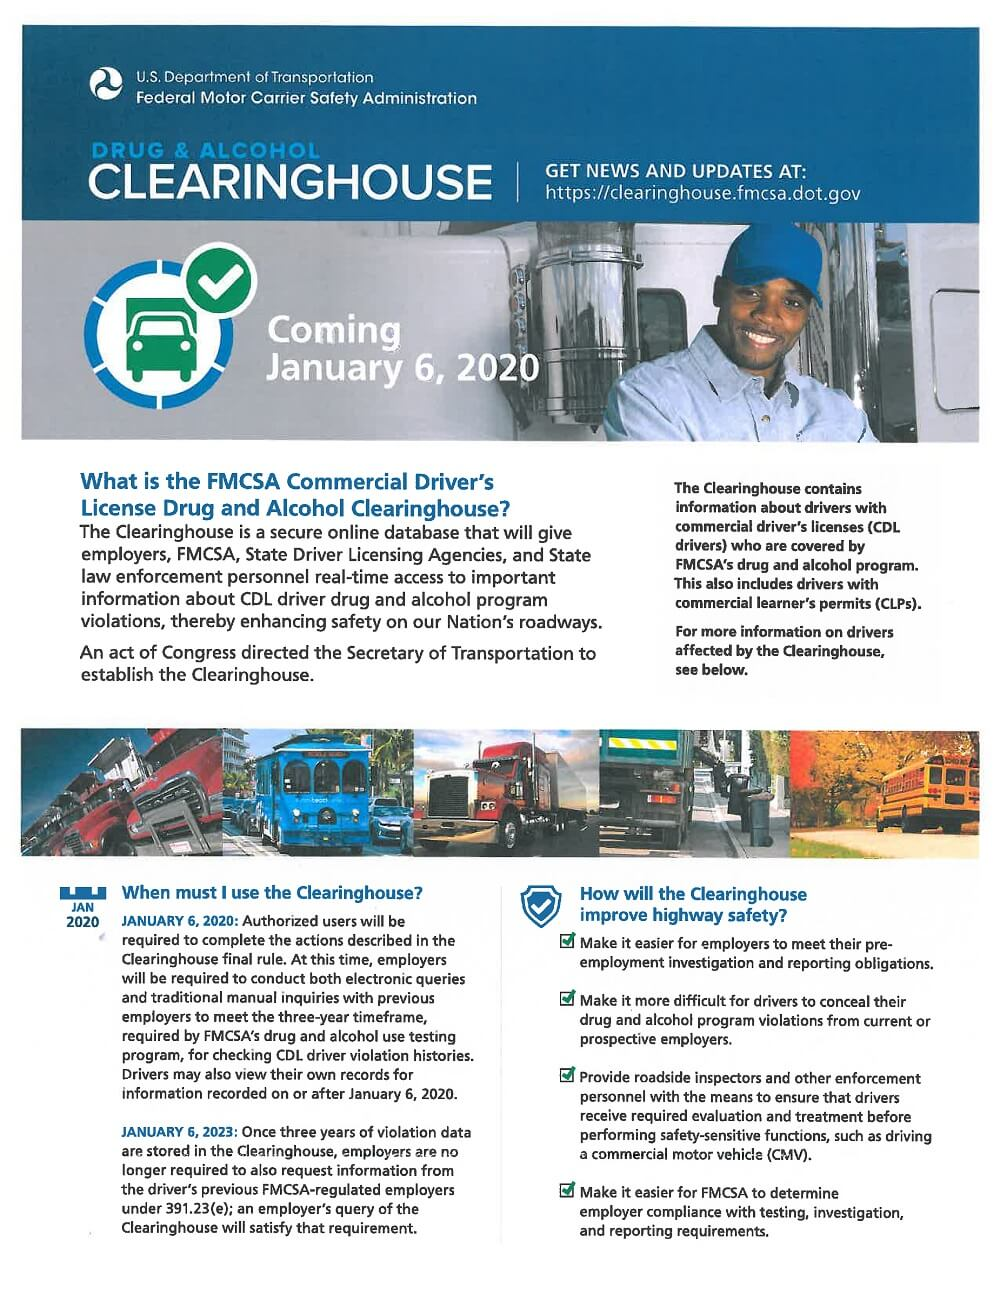 FMCSA Clearinghouse Requirement Flyer 1 of 2